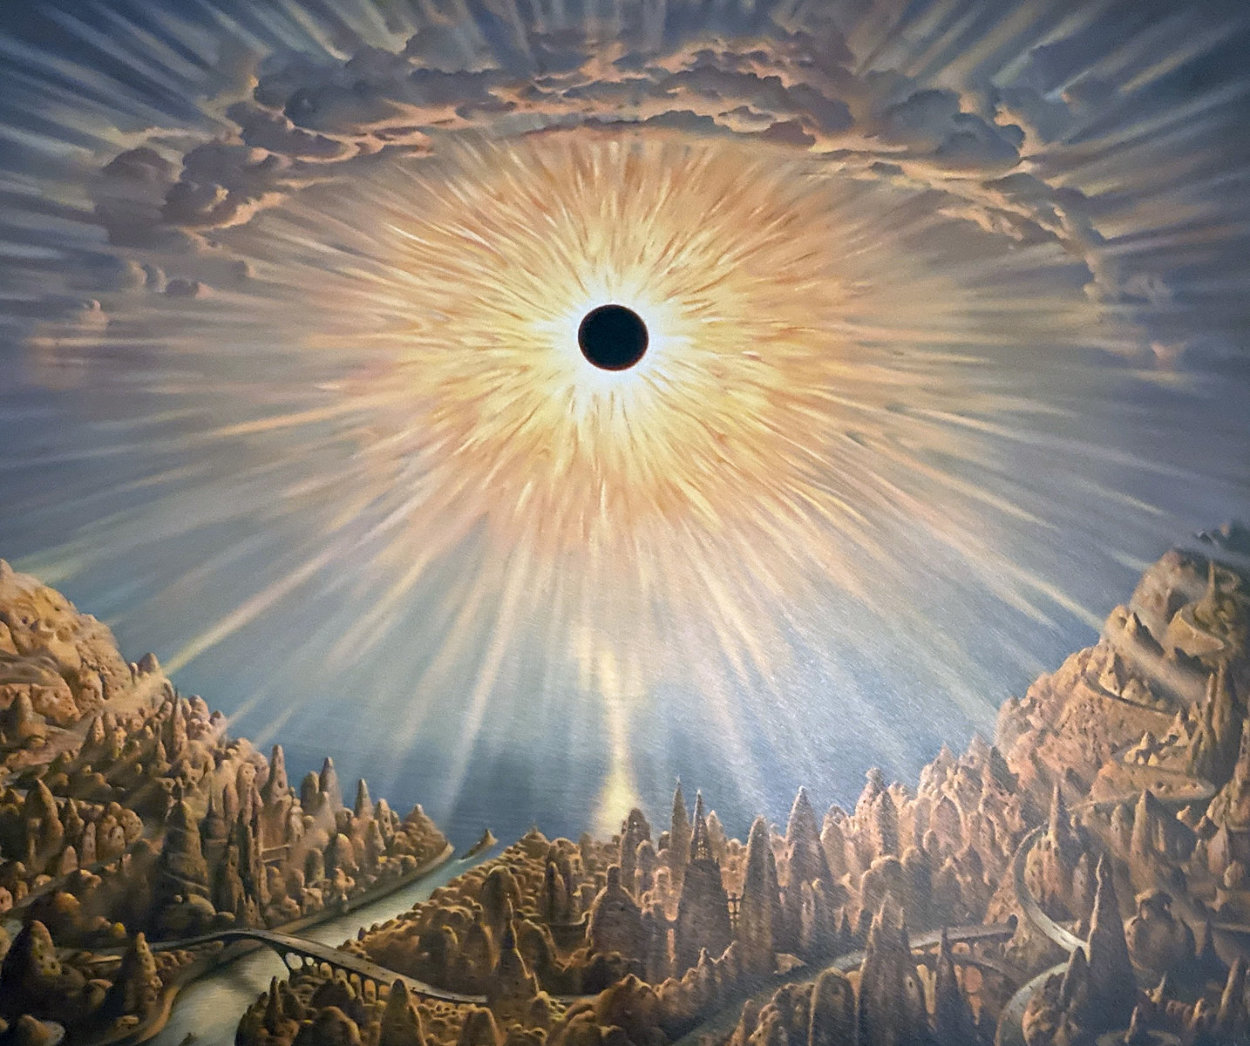 Eclipse Limited Edition Print by Vladimir Kush